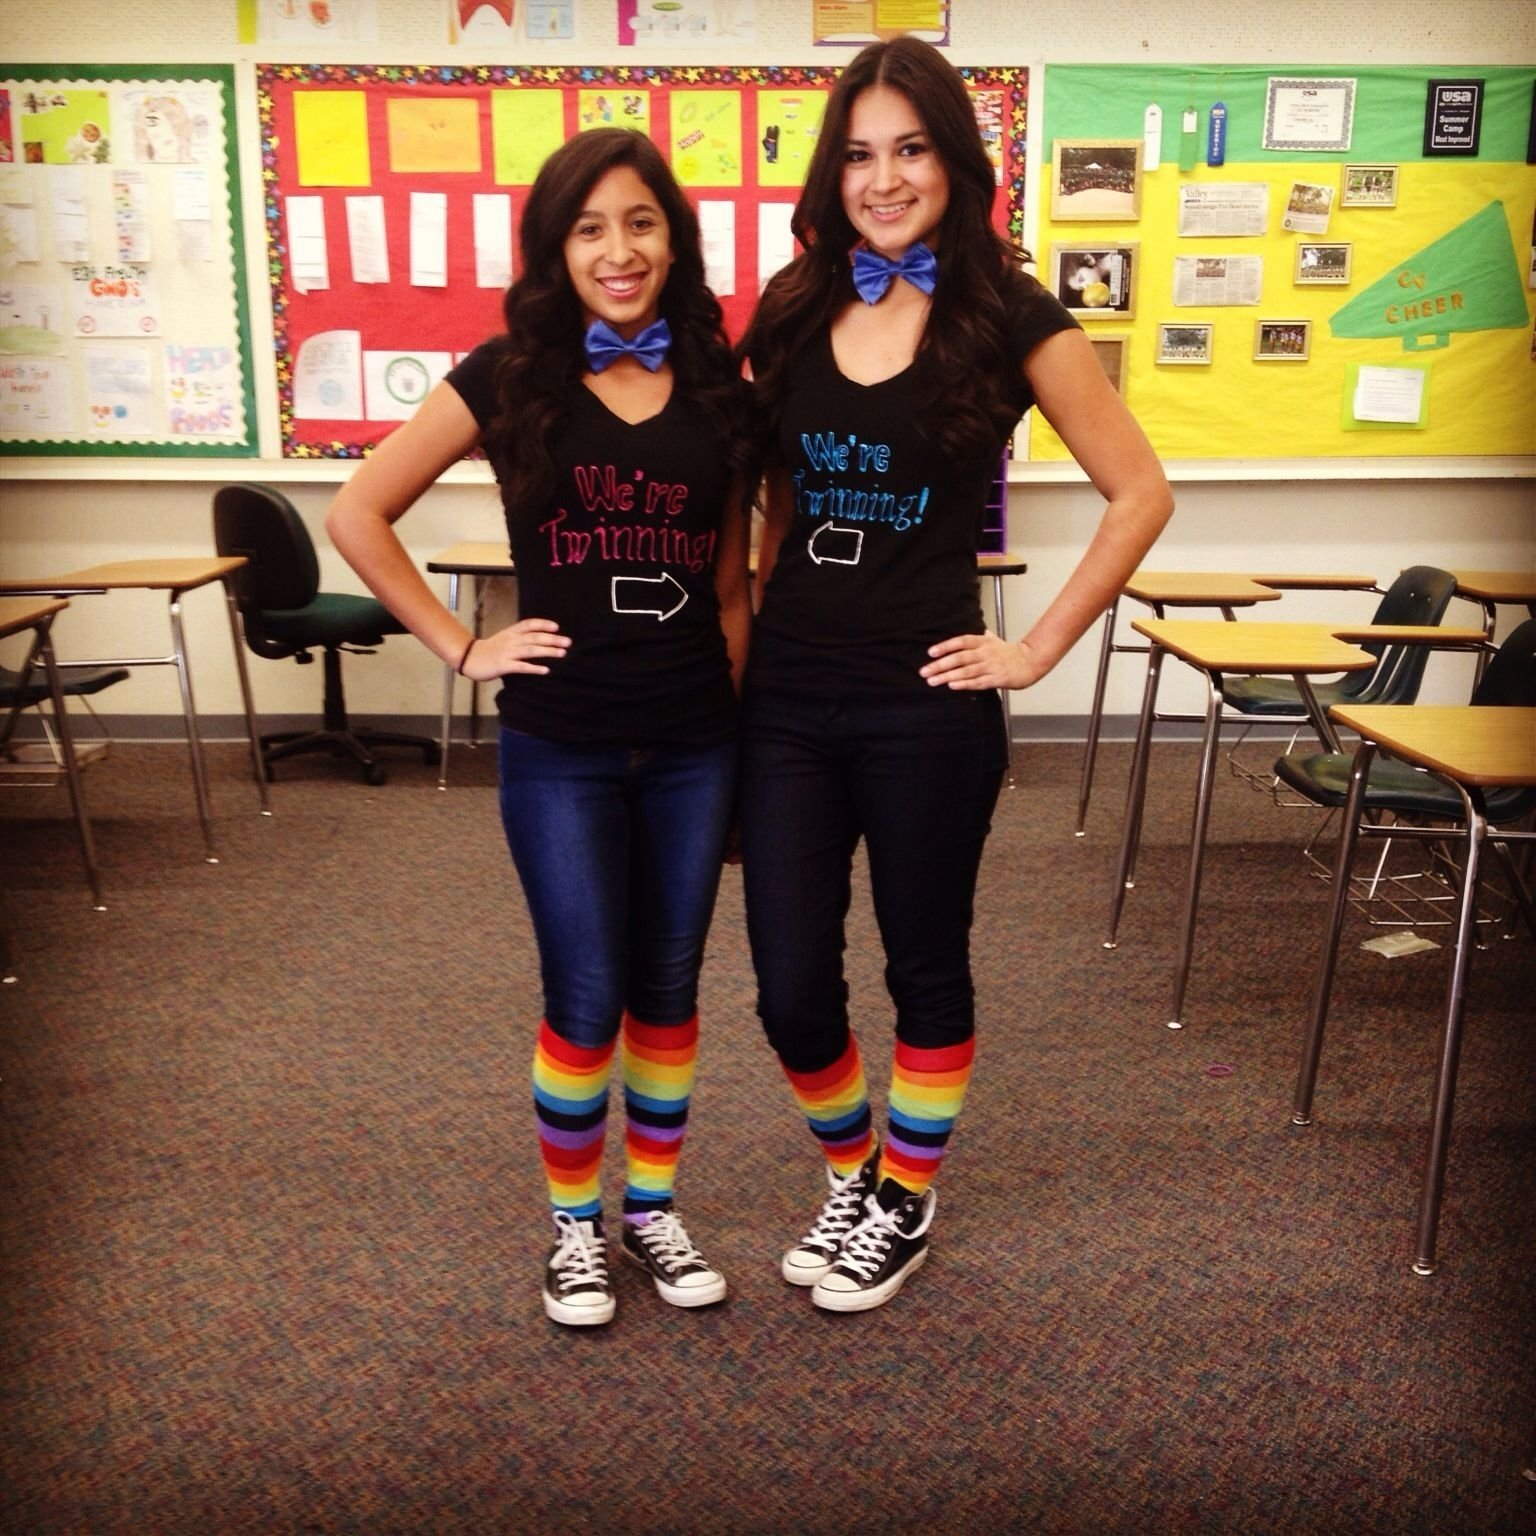 10 Lovely Twin Day Ideas For Guys twin day spirit week at school my lifee29da4 pinterest twins 17 2020